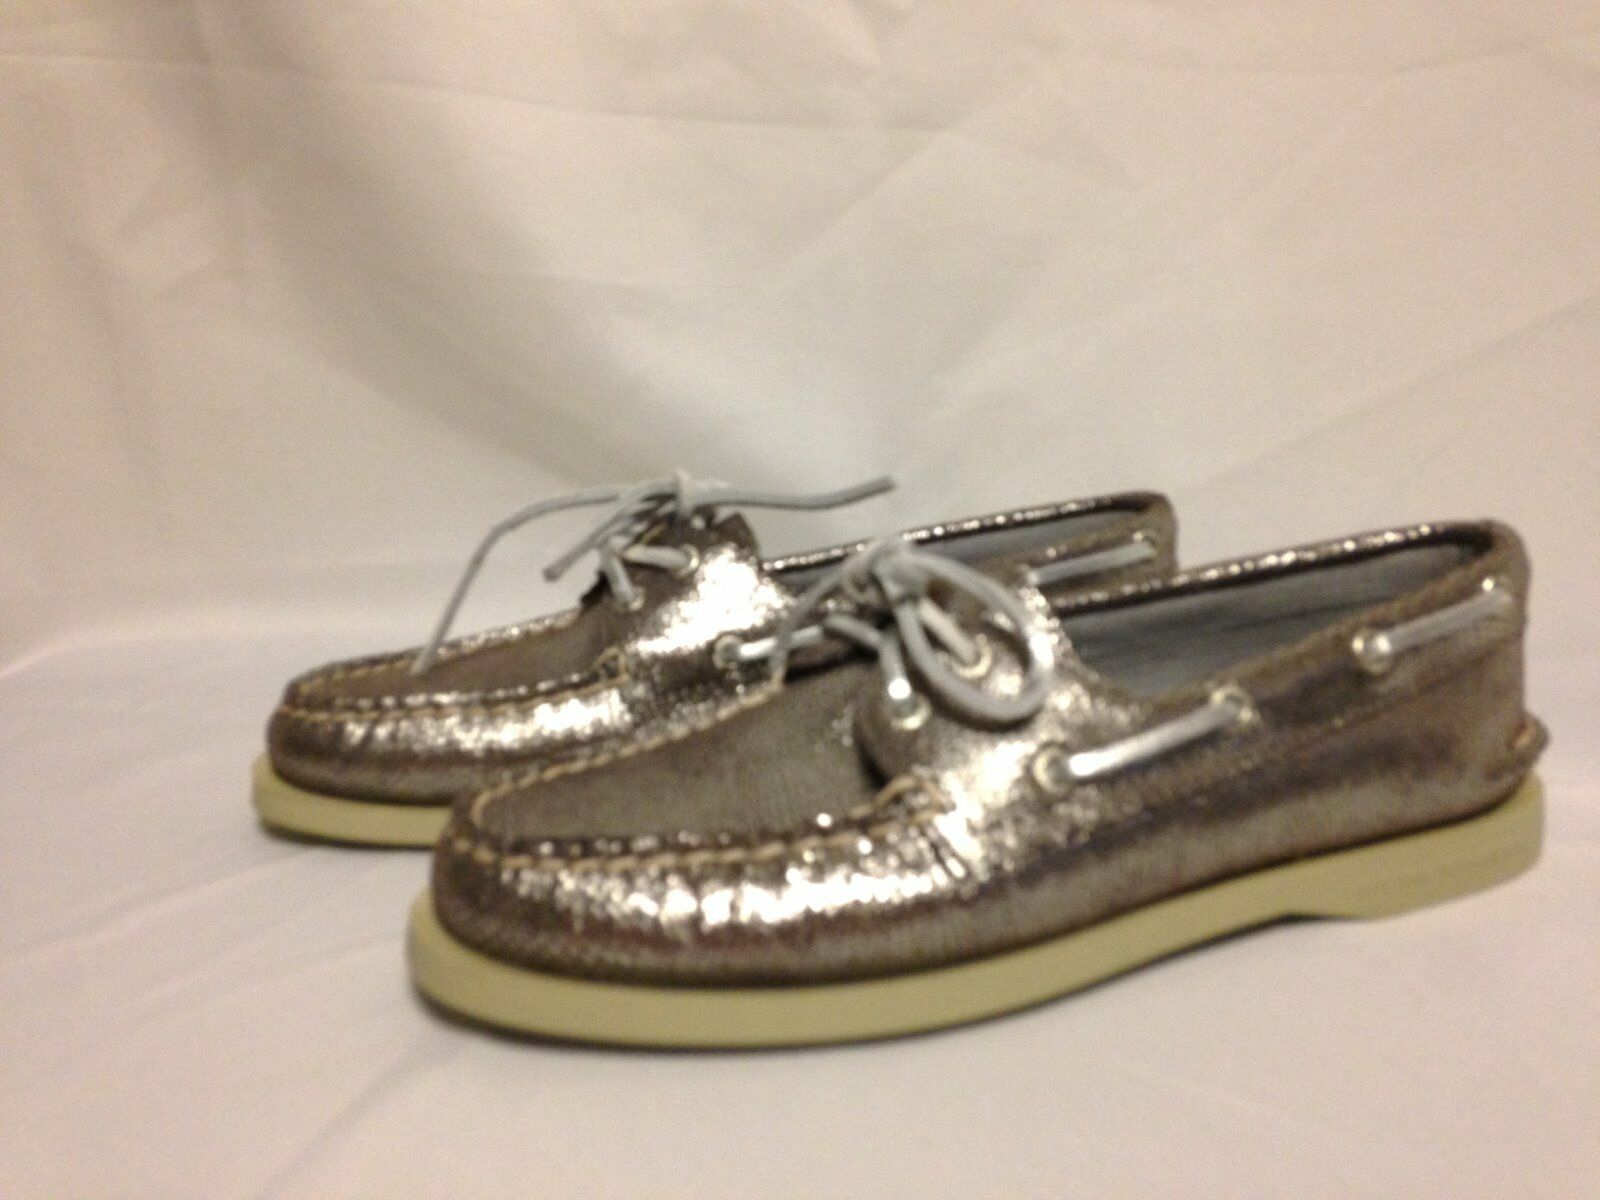 Sperry Top Sider A O 2 Eye Boat shoes 6.5 M Silver Metallic Snake  New w Box